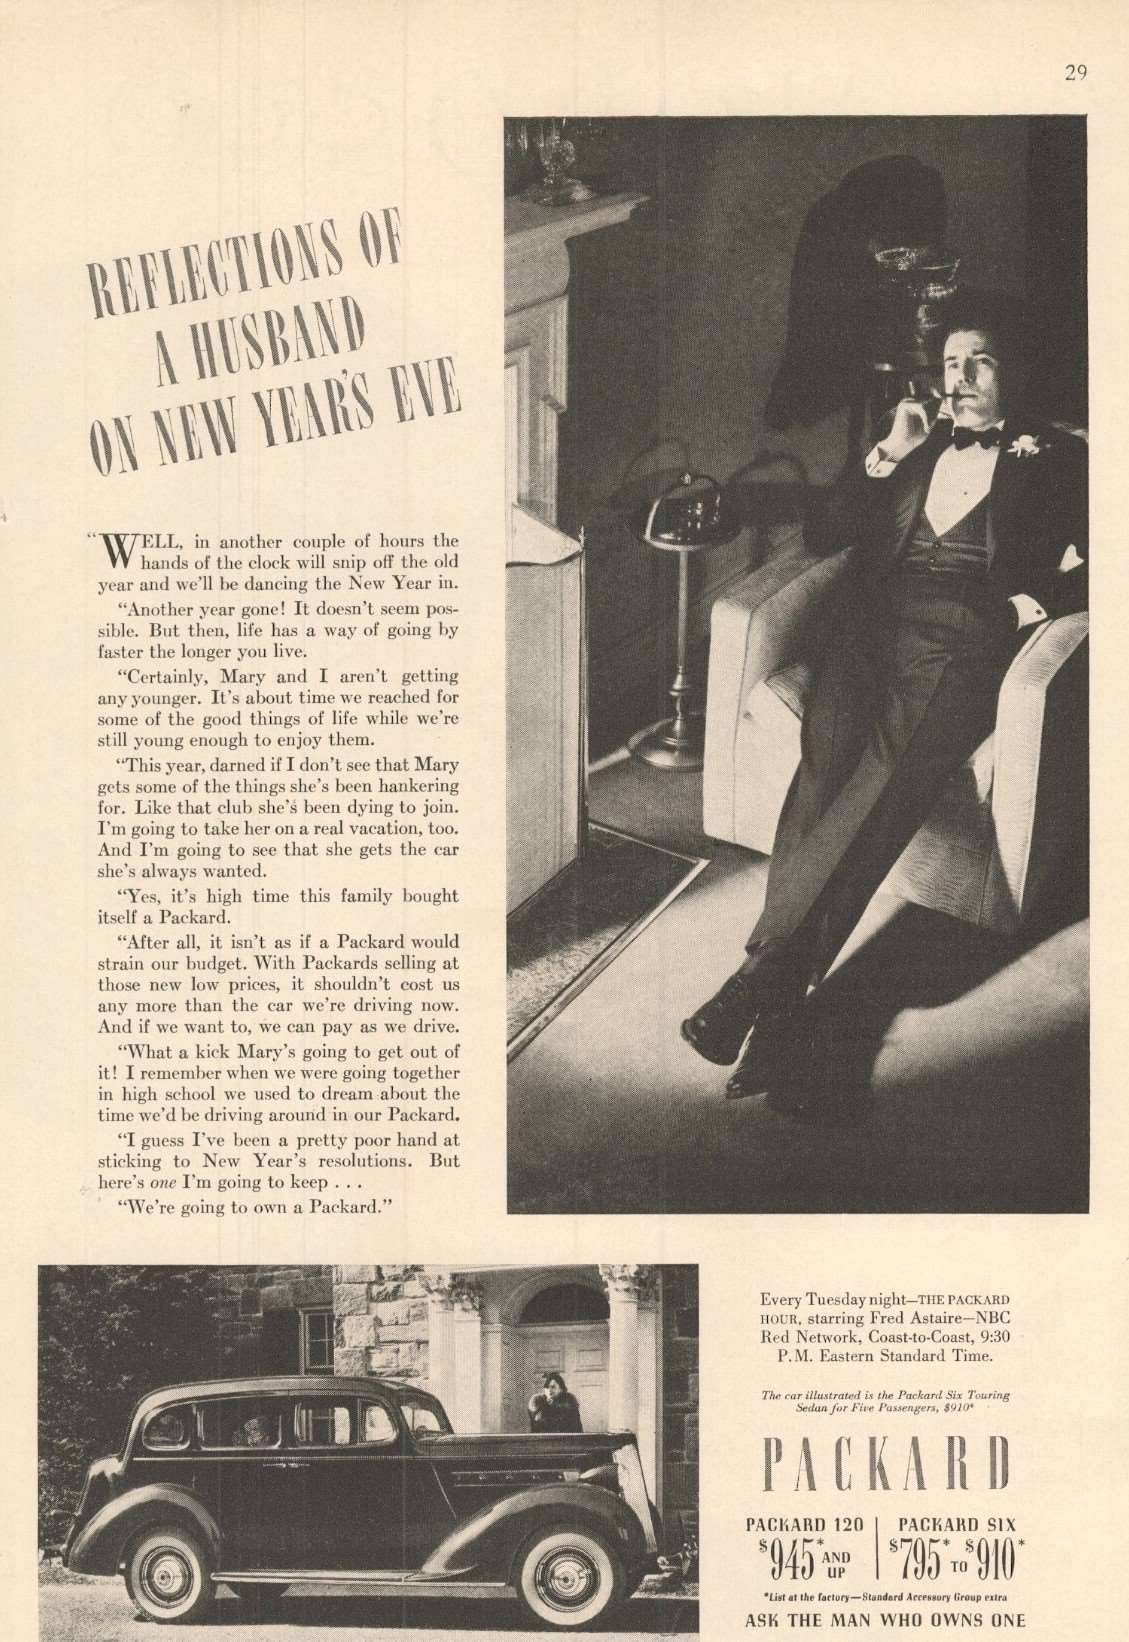 1937 Six for Five Passengers - Advertisement